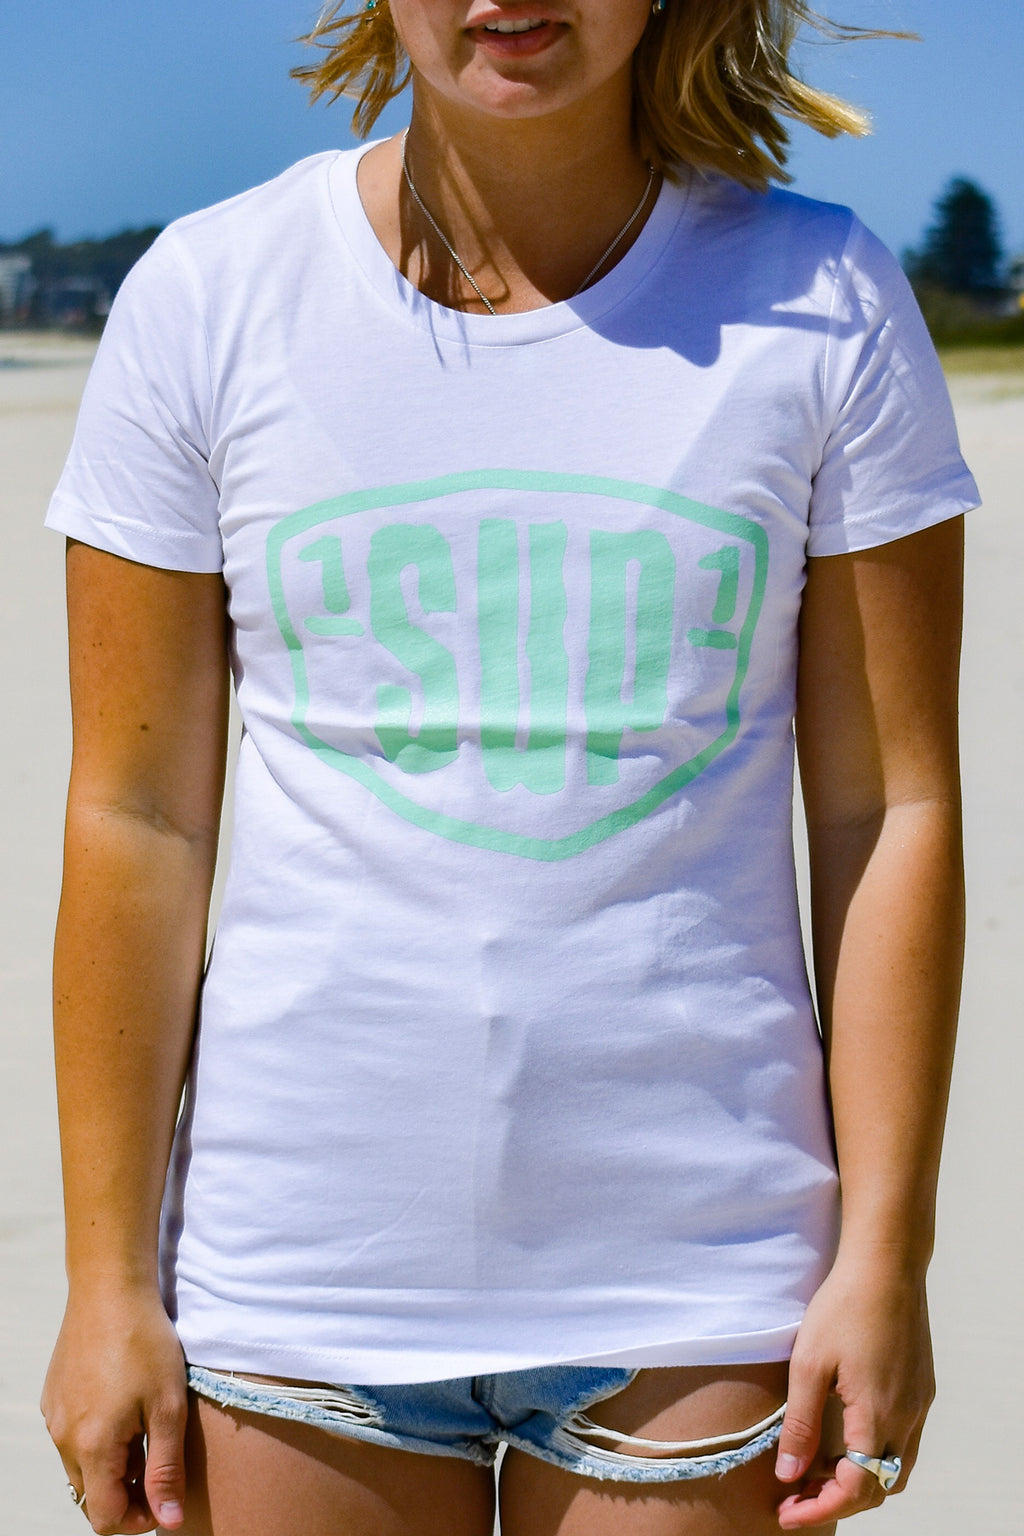 Women's Big Logo Tee (White & Mint)